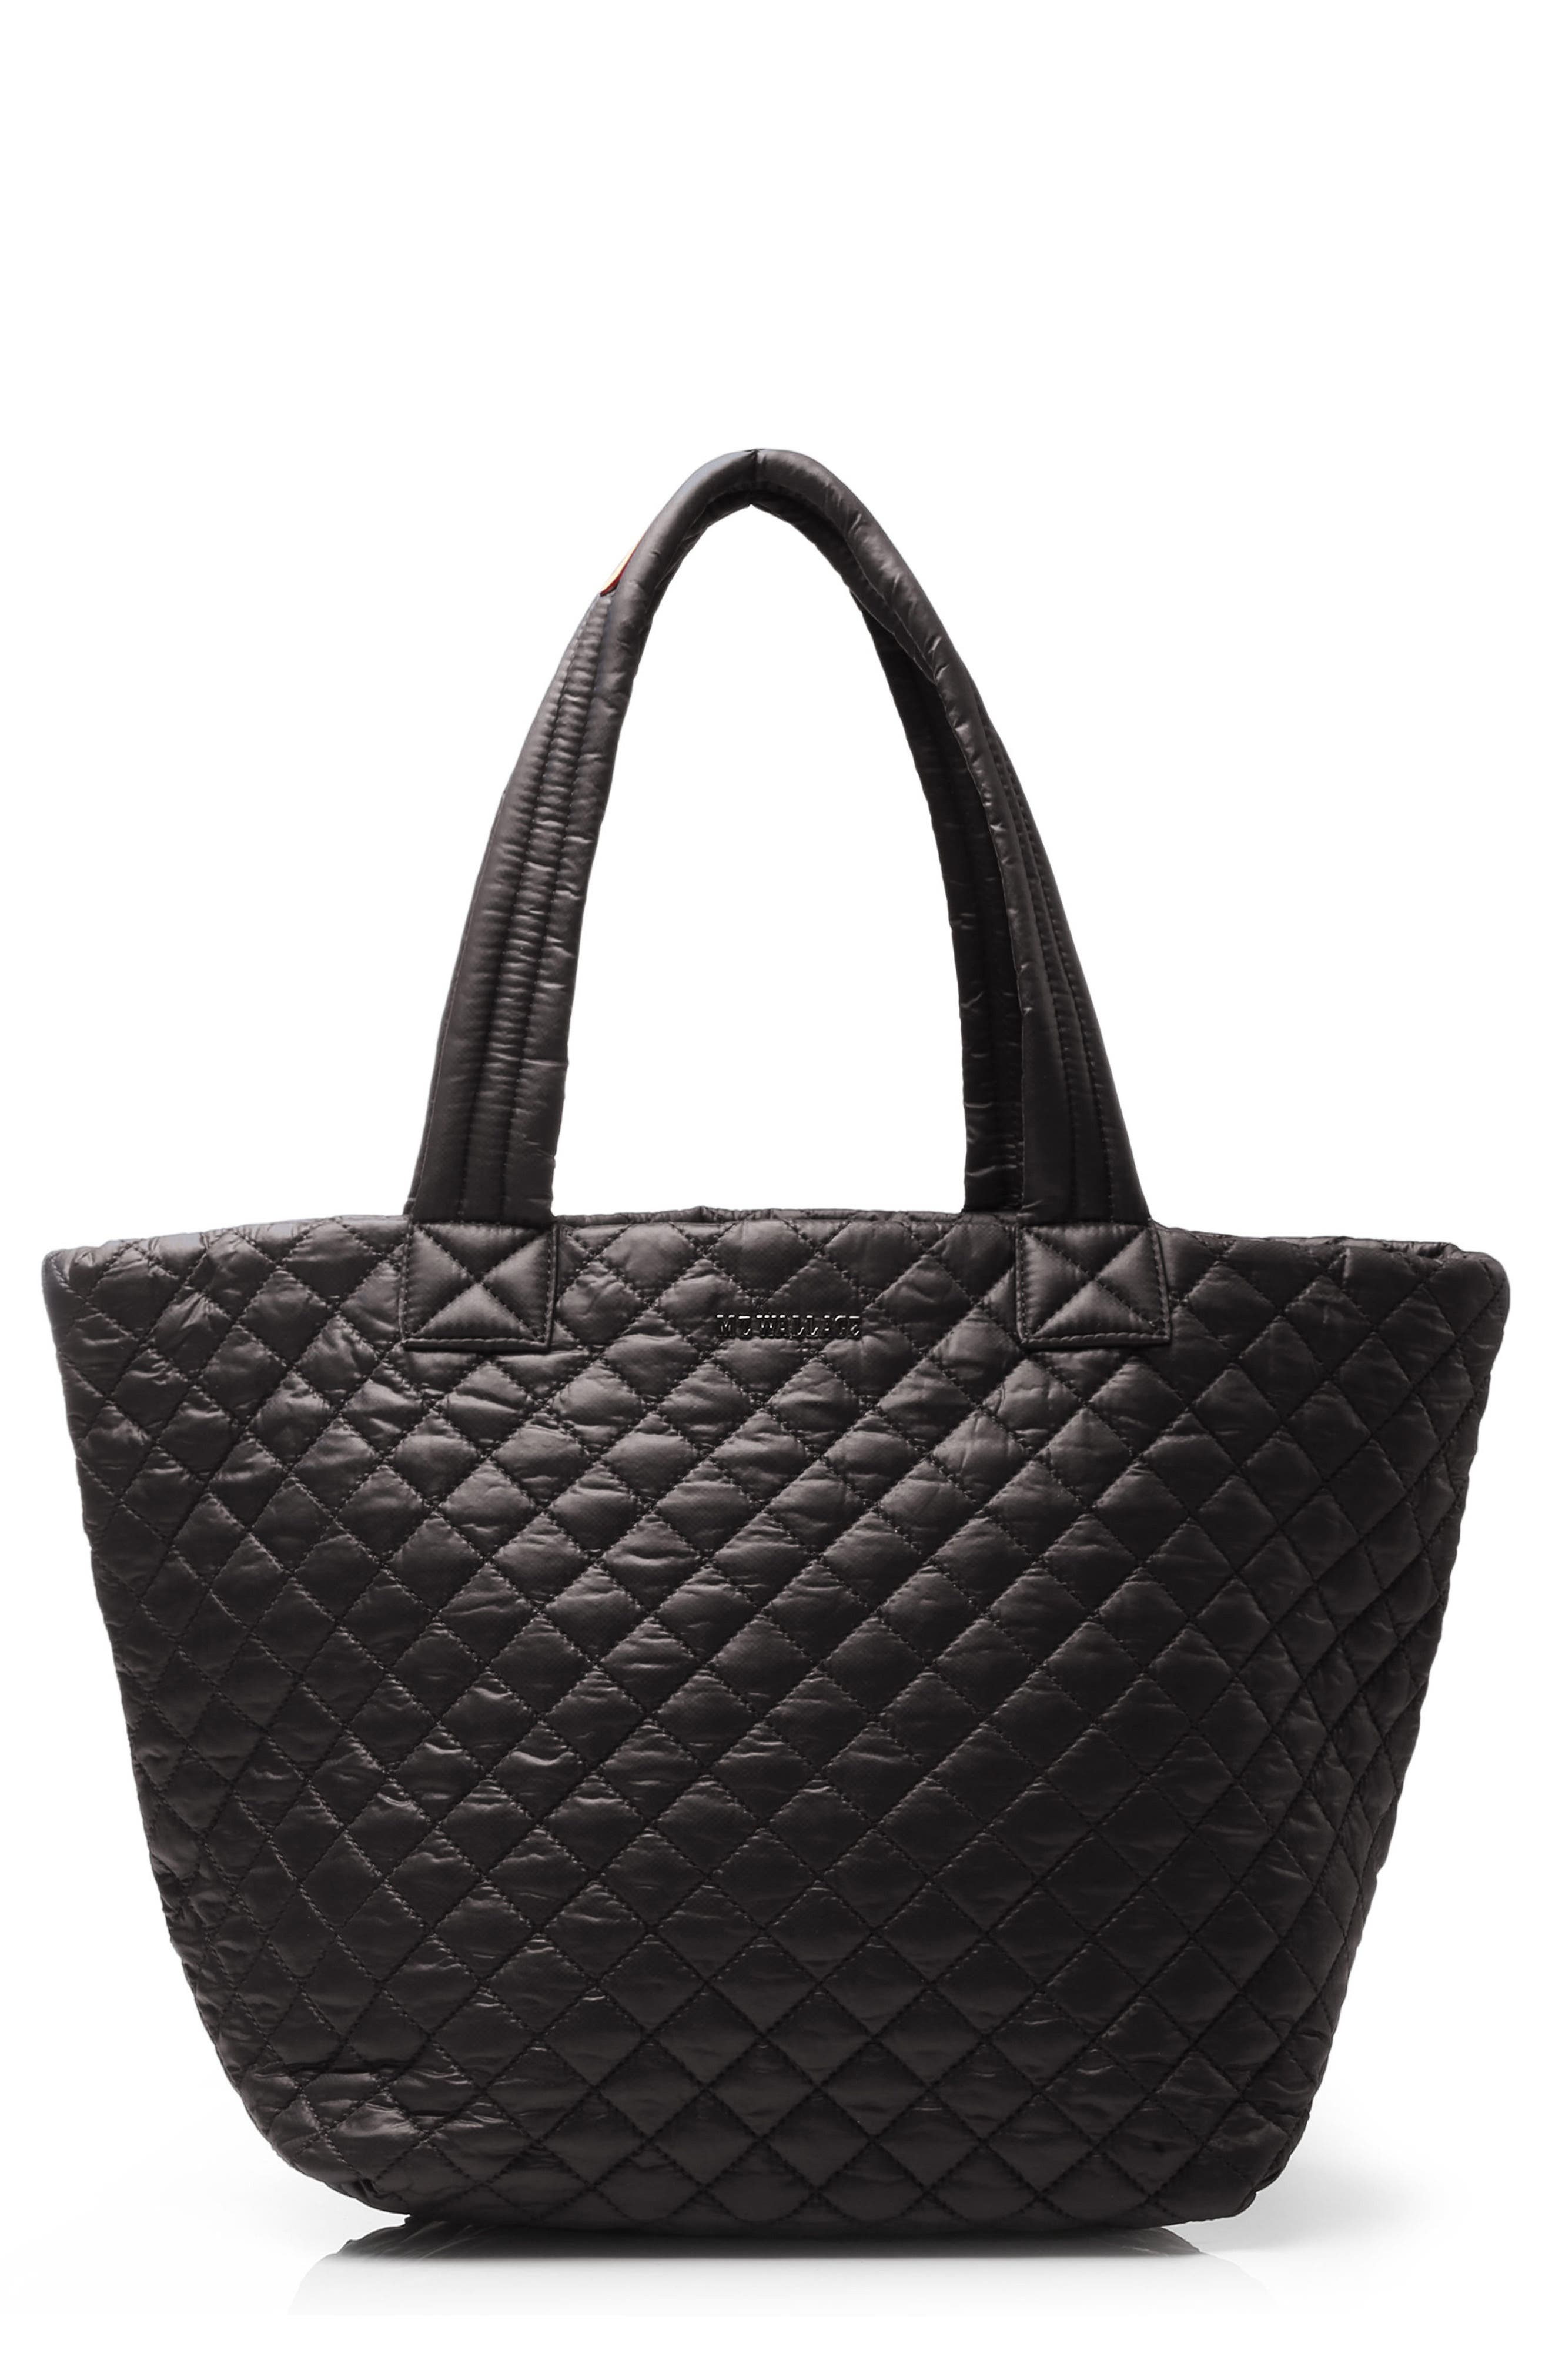 Medium Metro Tote,                             Main thumbnail 1, color,                             BLACK